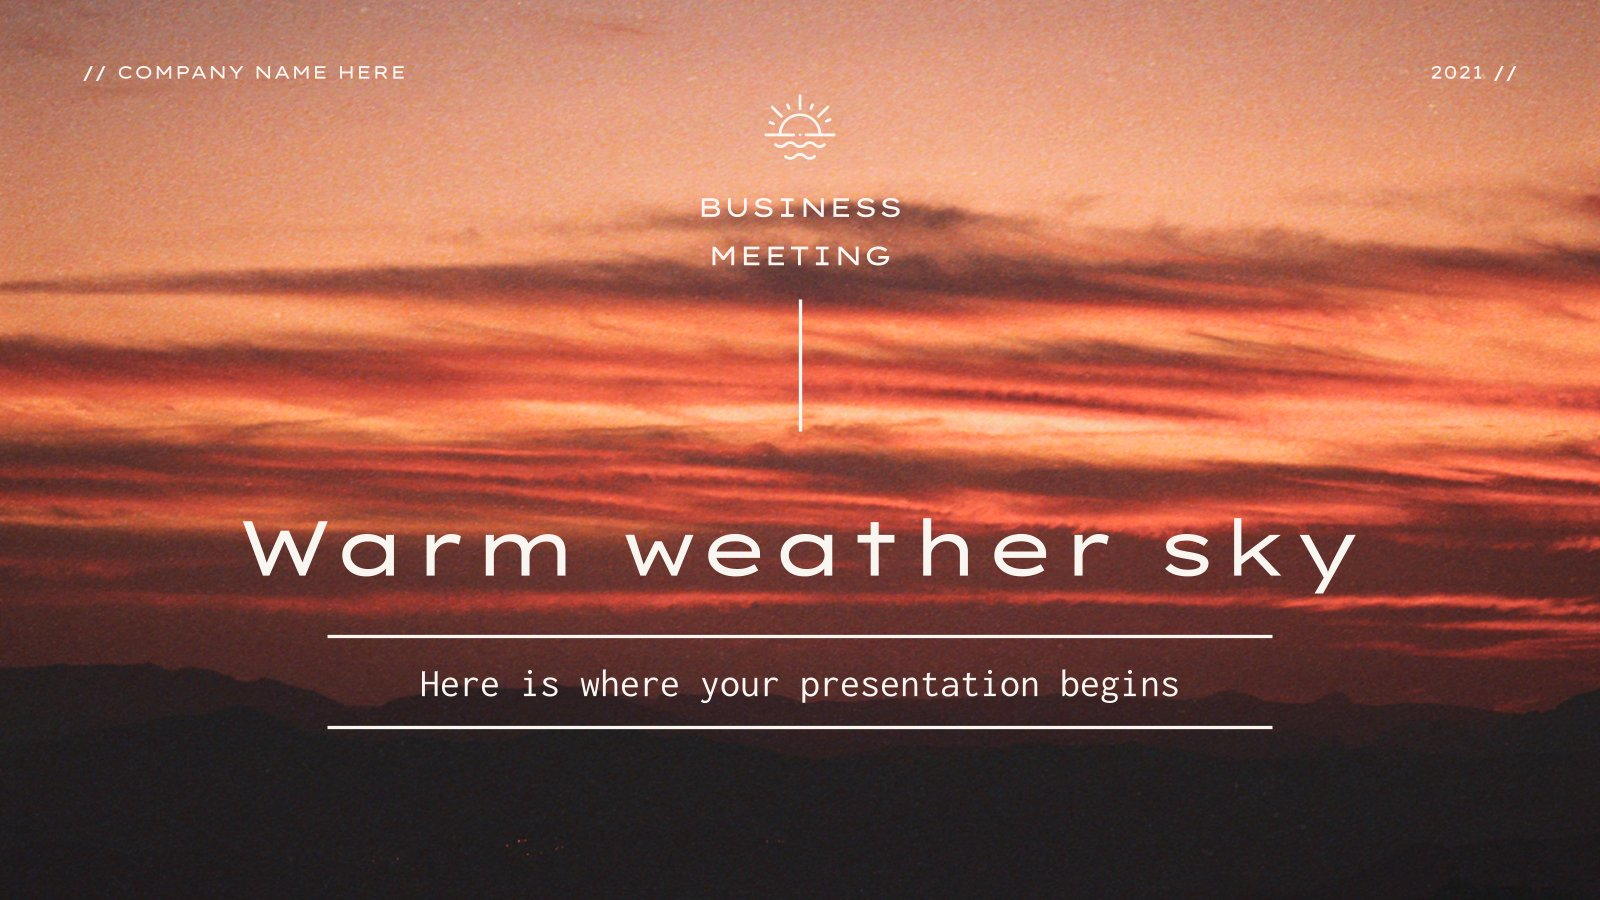 Warm Weather Sky Business Meeting presentation template